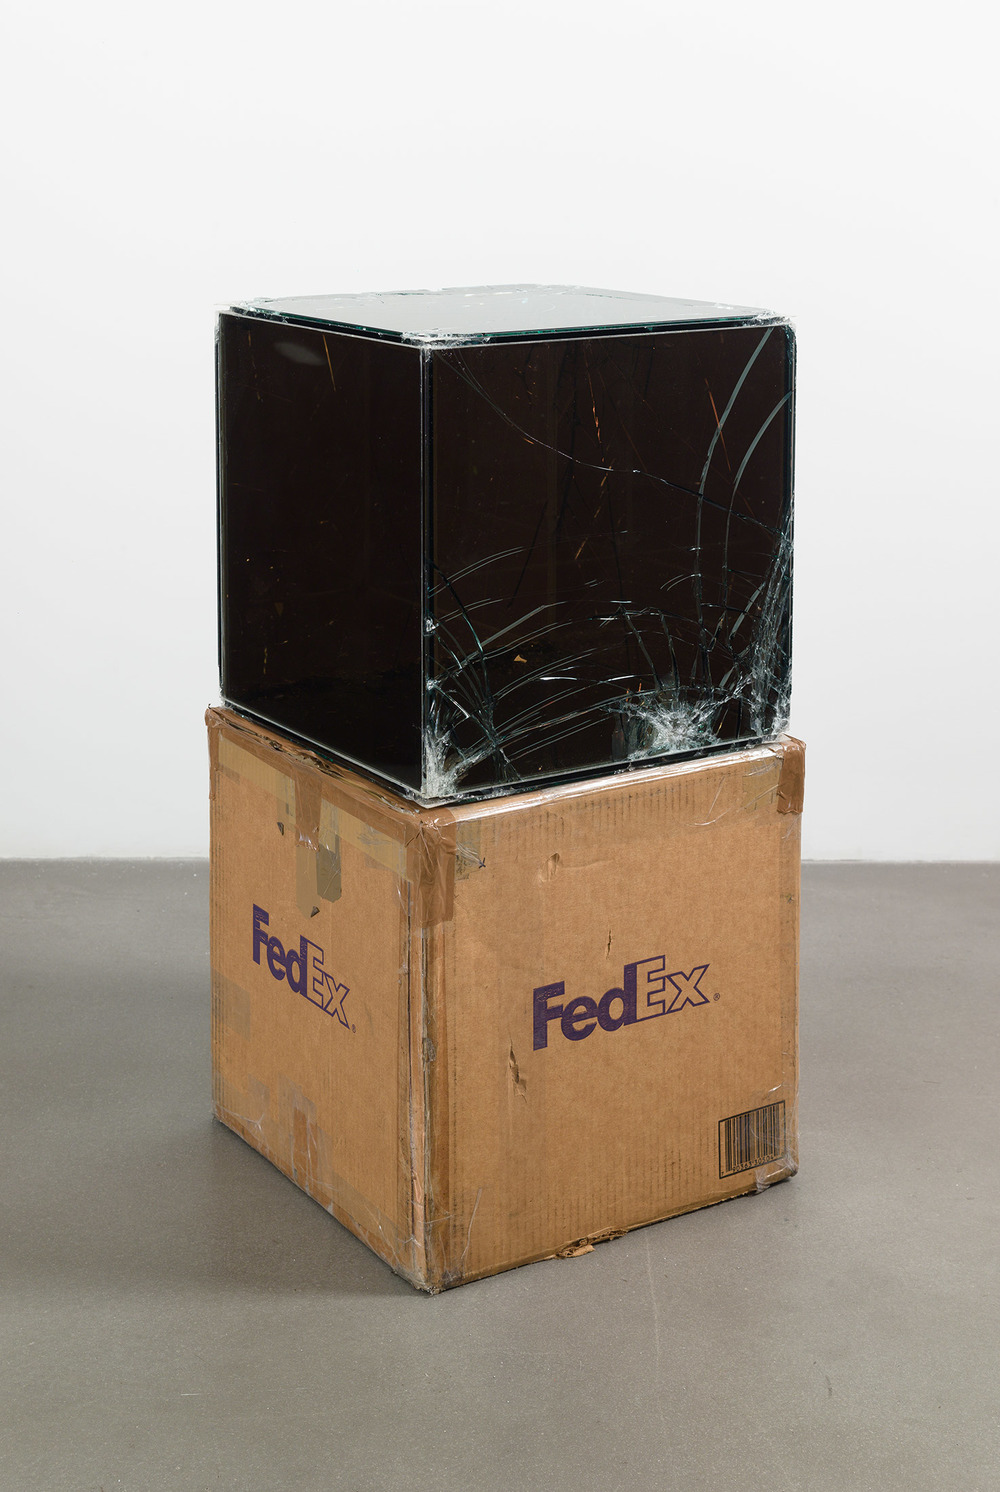 FedEx Kraft Box 2005 FEDEX 330504 10/05 SSCC, Priority Overnight, Los Angeles–Miami trk#865344981358, October 29–30, 2008, Priority Overnight, Miami–Ann Arbor trk#861049125126, March 3–4, 2009, Standard Overnight, Ann Arbor–Los Angeles trk#868274625760, July 9–10, 2009, Standard Overnight, Los Angeles–New York trk#774901687401, November 4–5, 2015, Standard Overnight, New York–Los Angeles trk#775241470240, December 21–22, 2015    2008–   Laminated Mirropane, FedEx shipping box, accrued FedEx shipping and tracking labels, silicone, metal, tape  16 x 16 x 16 inches   Pulleys, Cogwheels, Mirrors, and Windows, 2009    Great Hall Exhibition, 2015